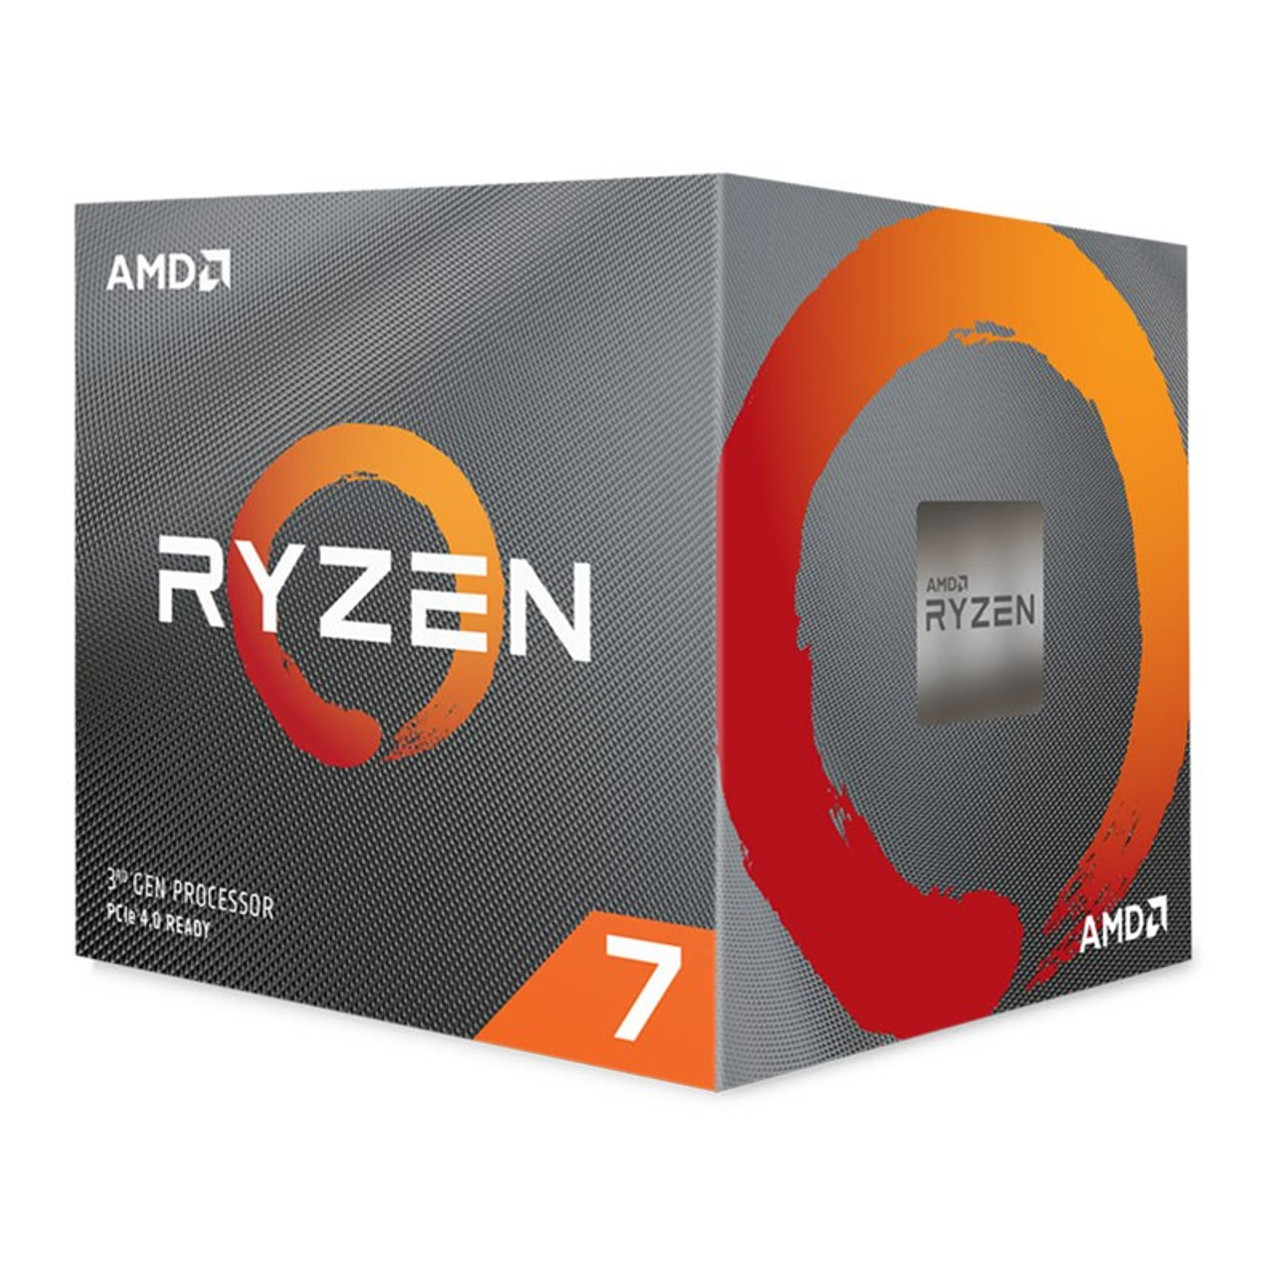 Product image for AMD Ryzen 7 3800X with Wraith Prism | CX Computer Superstore